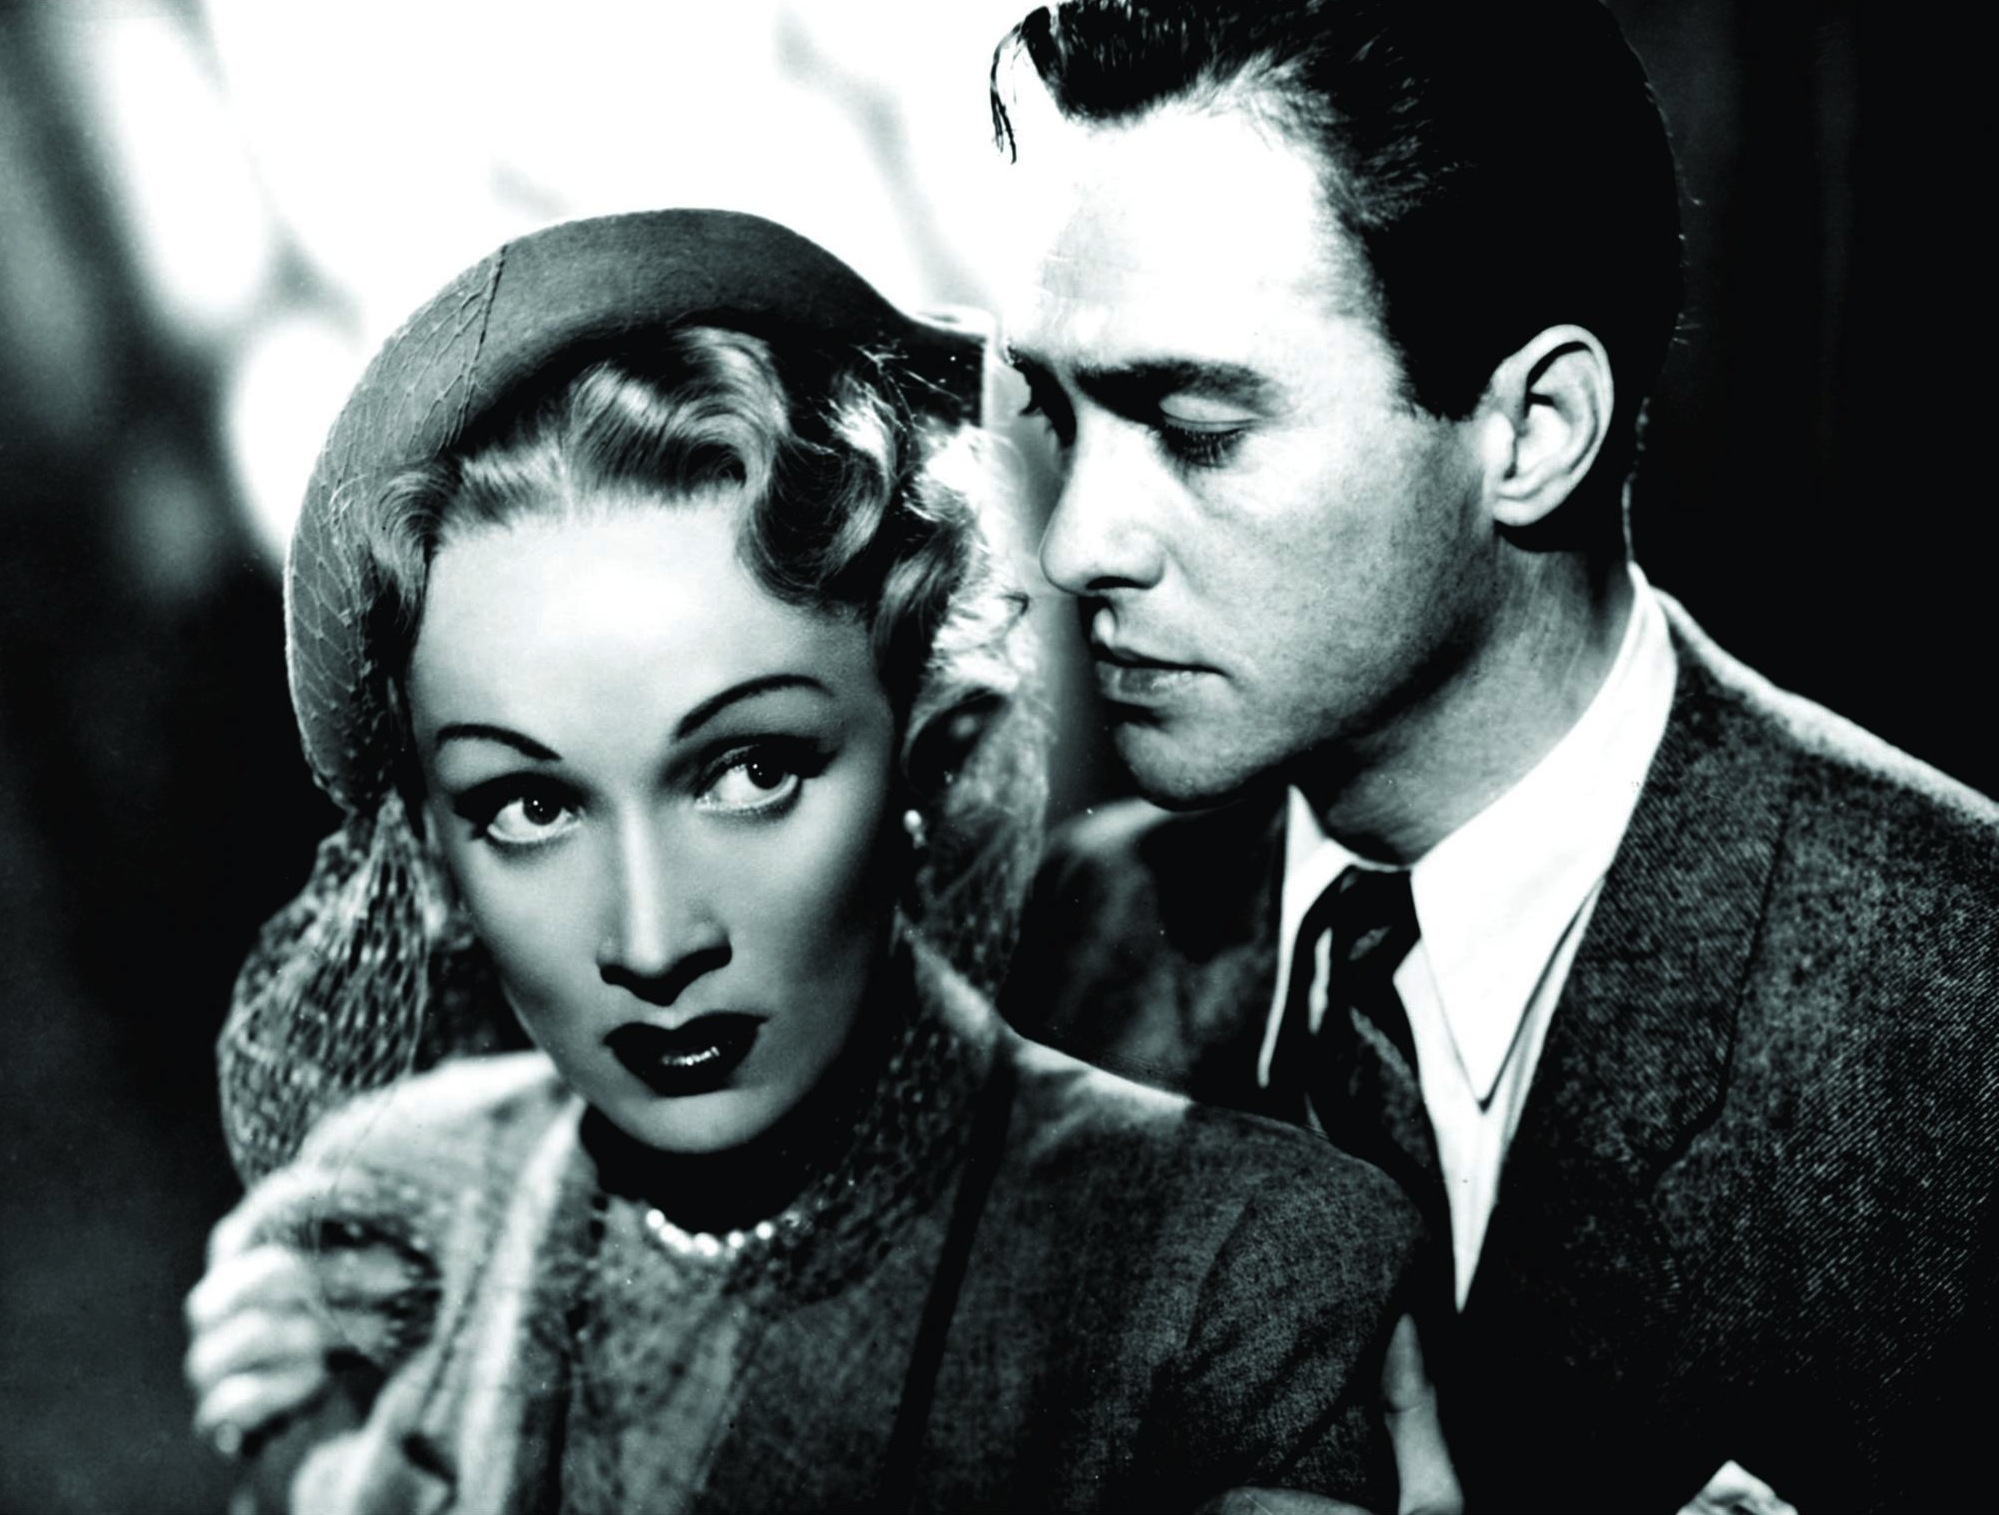 Marlene Dietrich and Richard Todd in Stage Fright (1950)